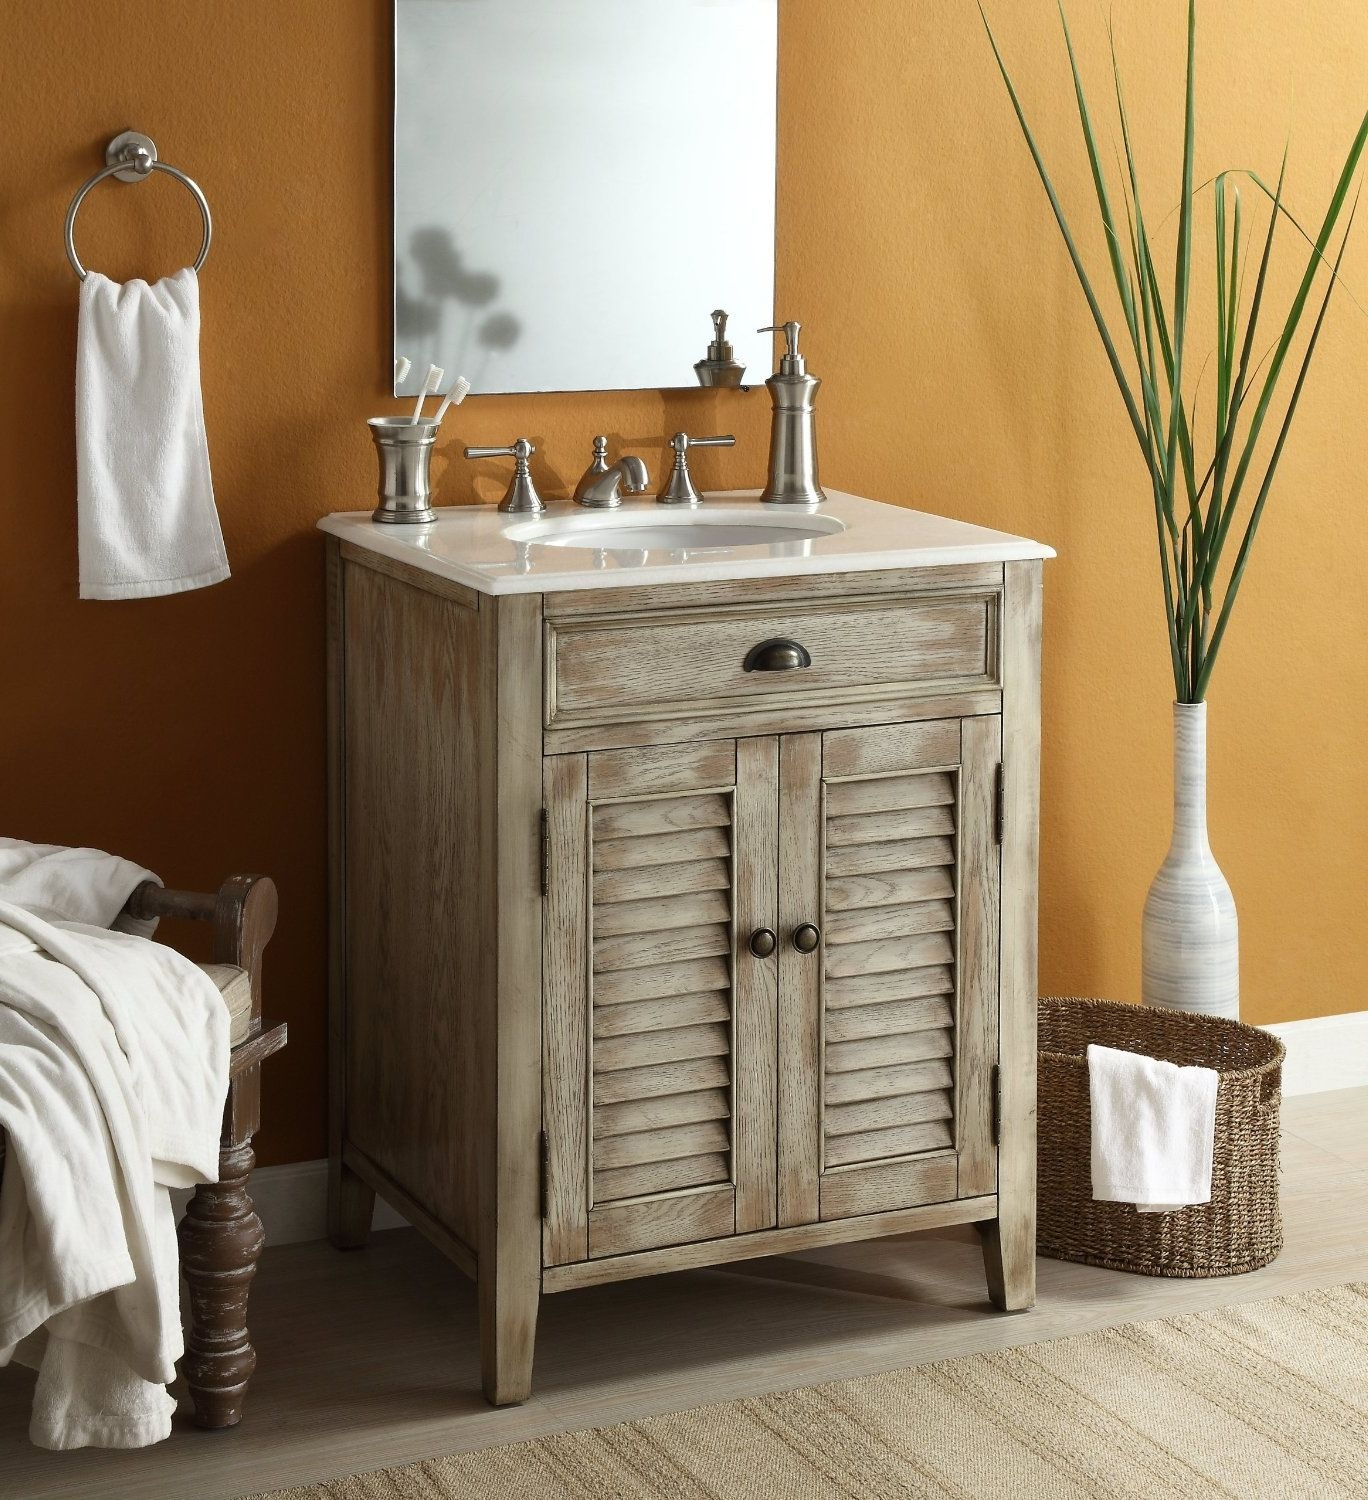 Permalink to Unique Small Bath Vanities